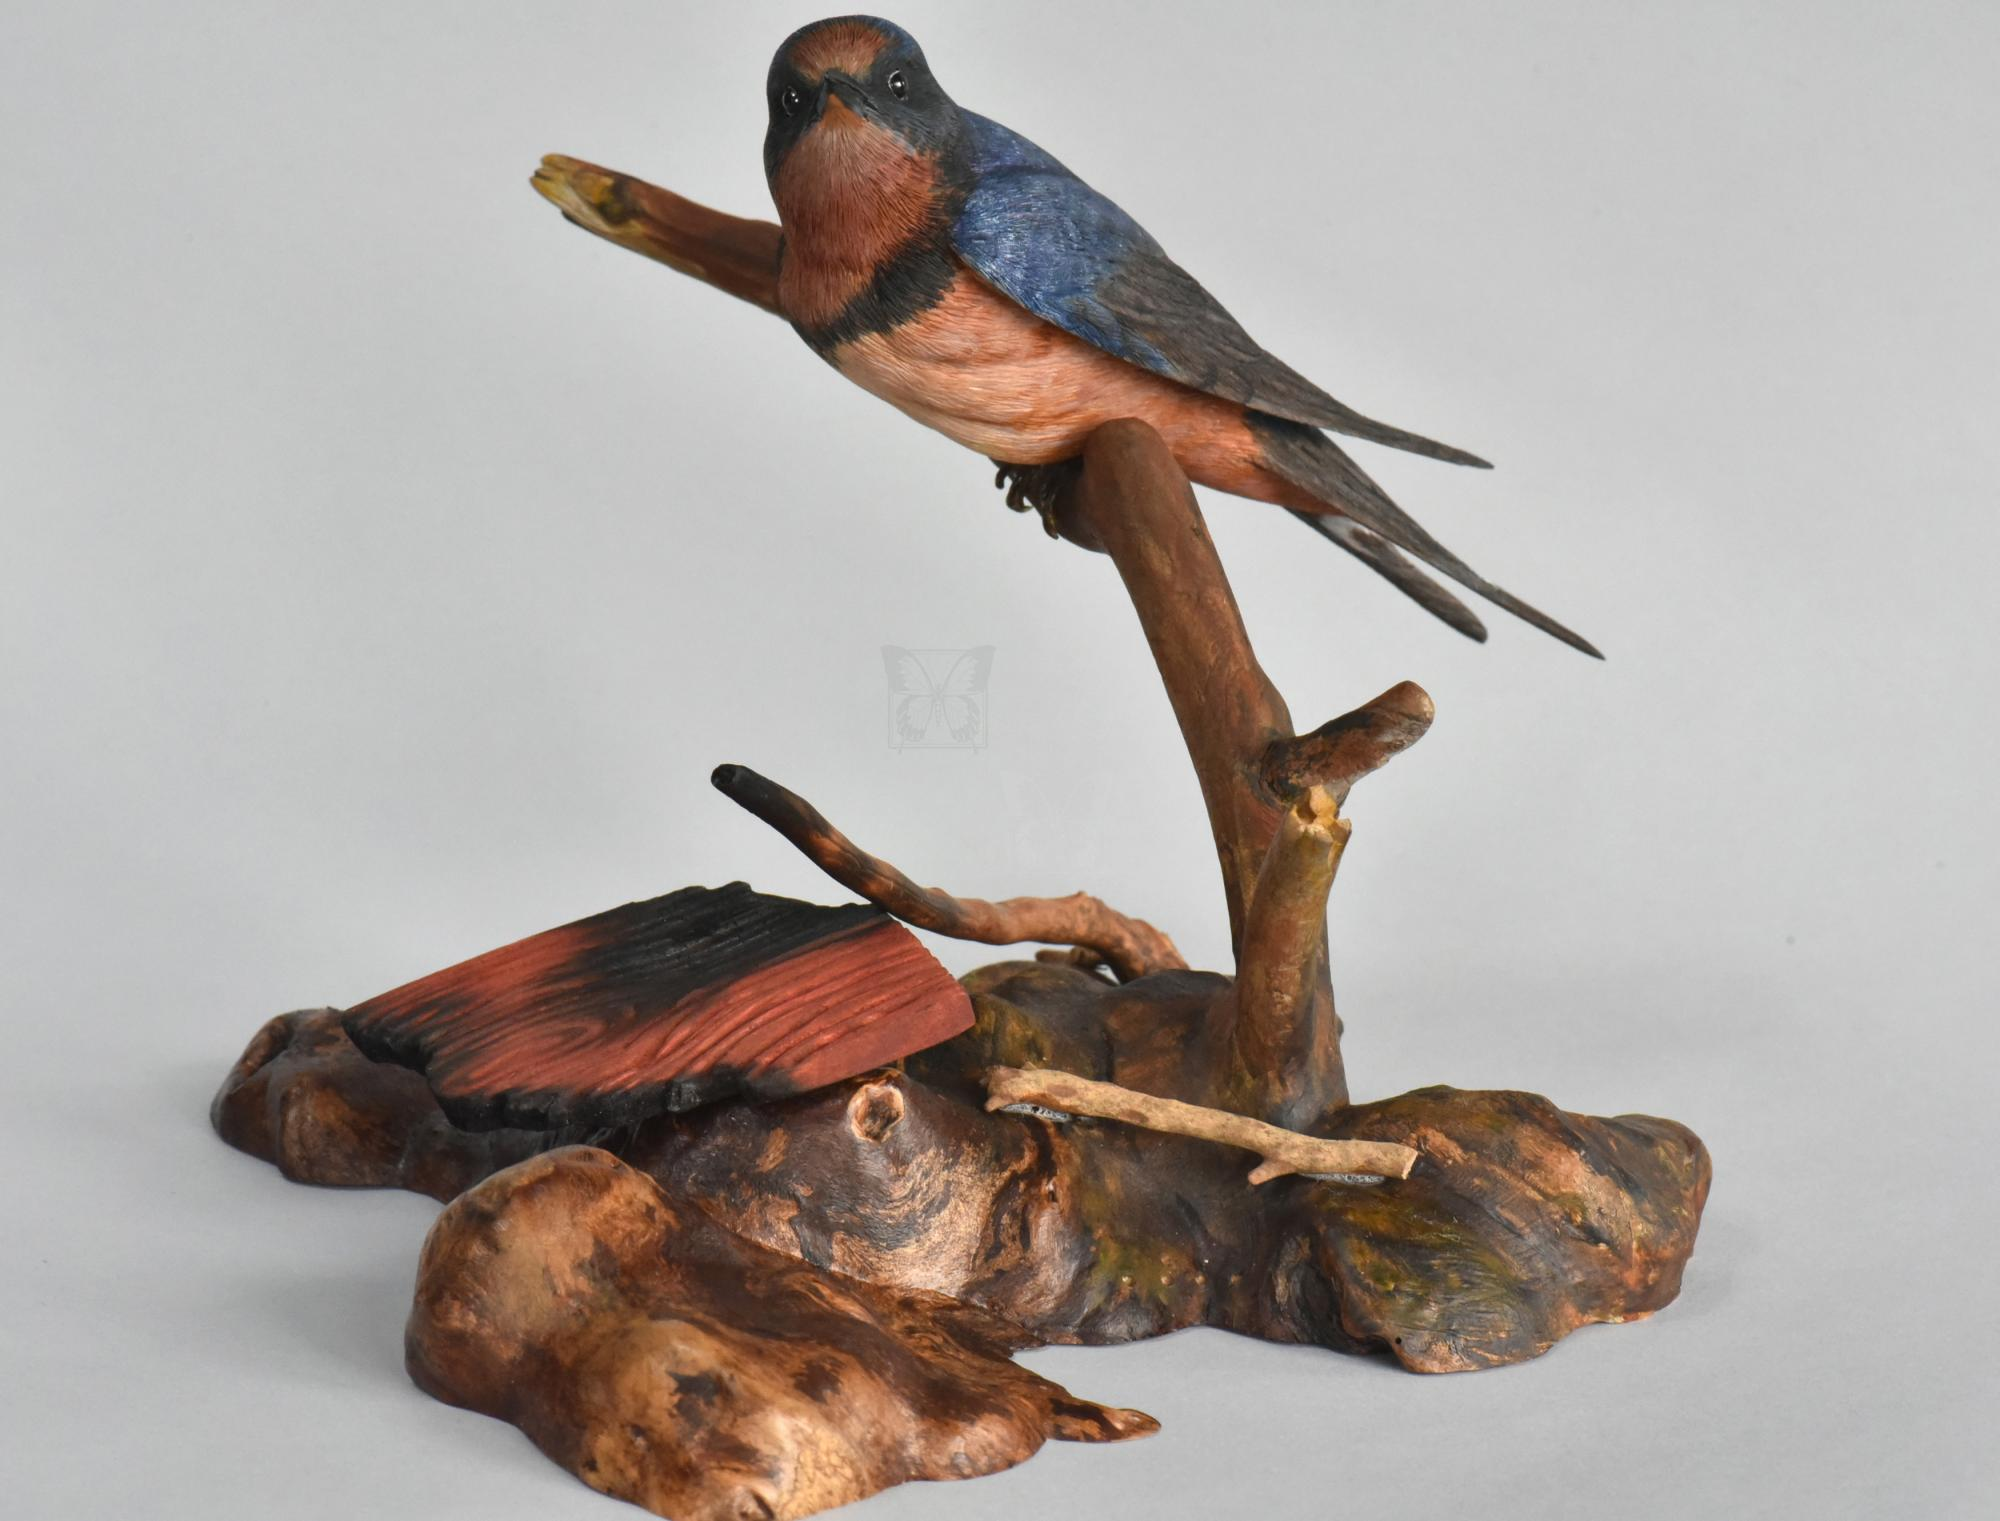 Homeless | Sculpture by Uta Strelive | Artists for Conservation 2021